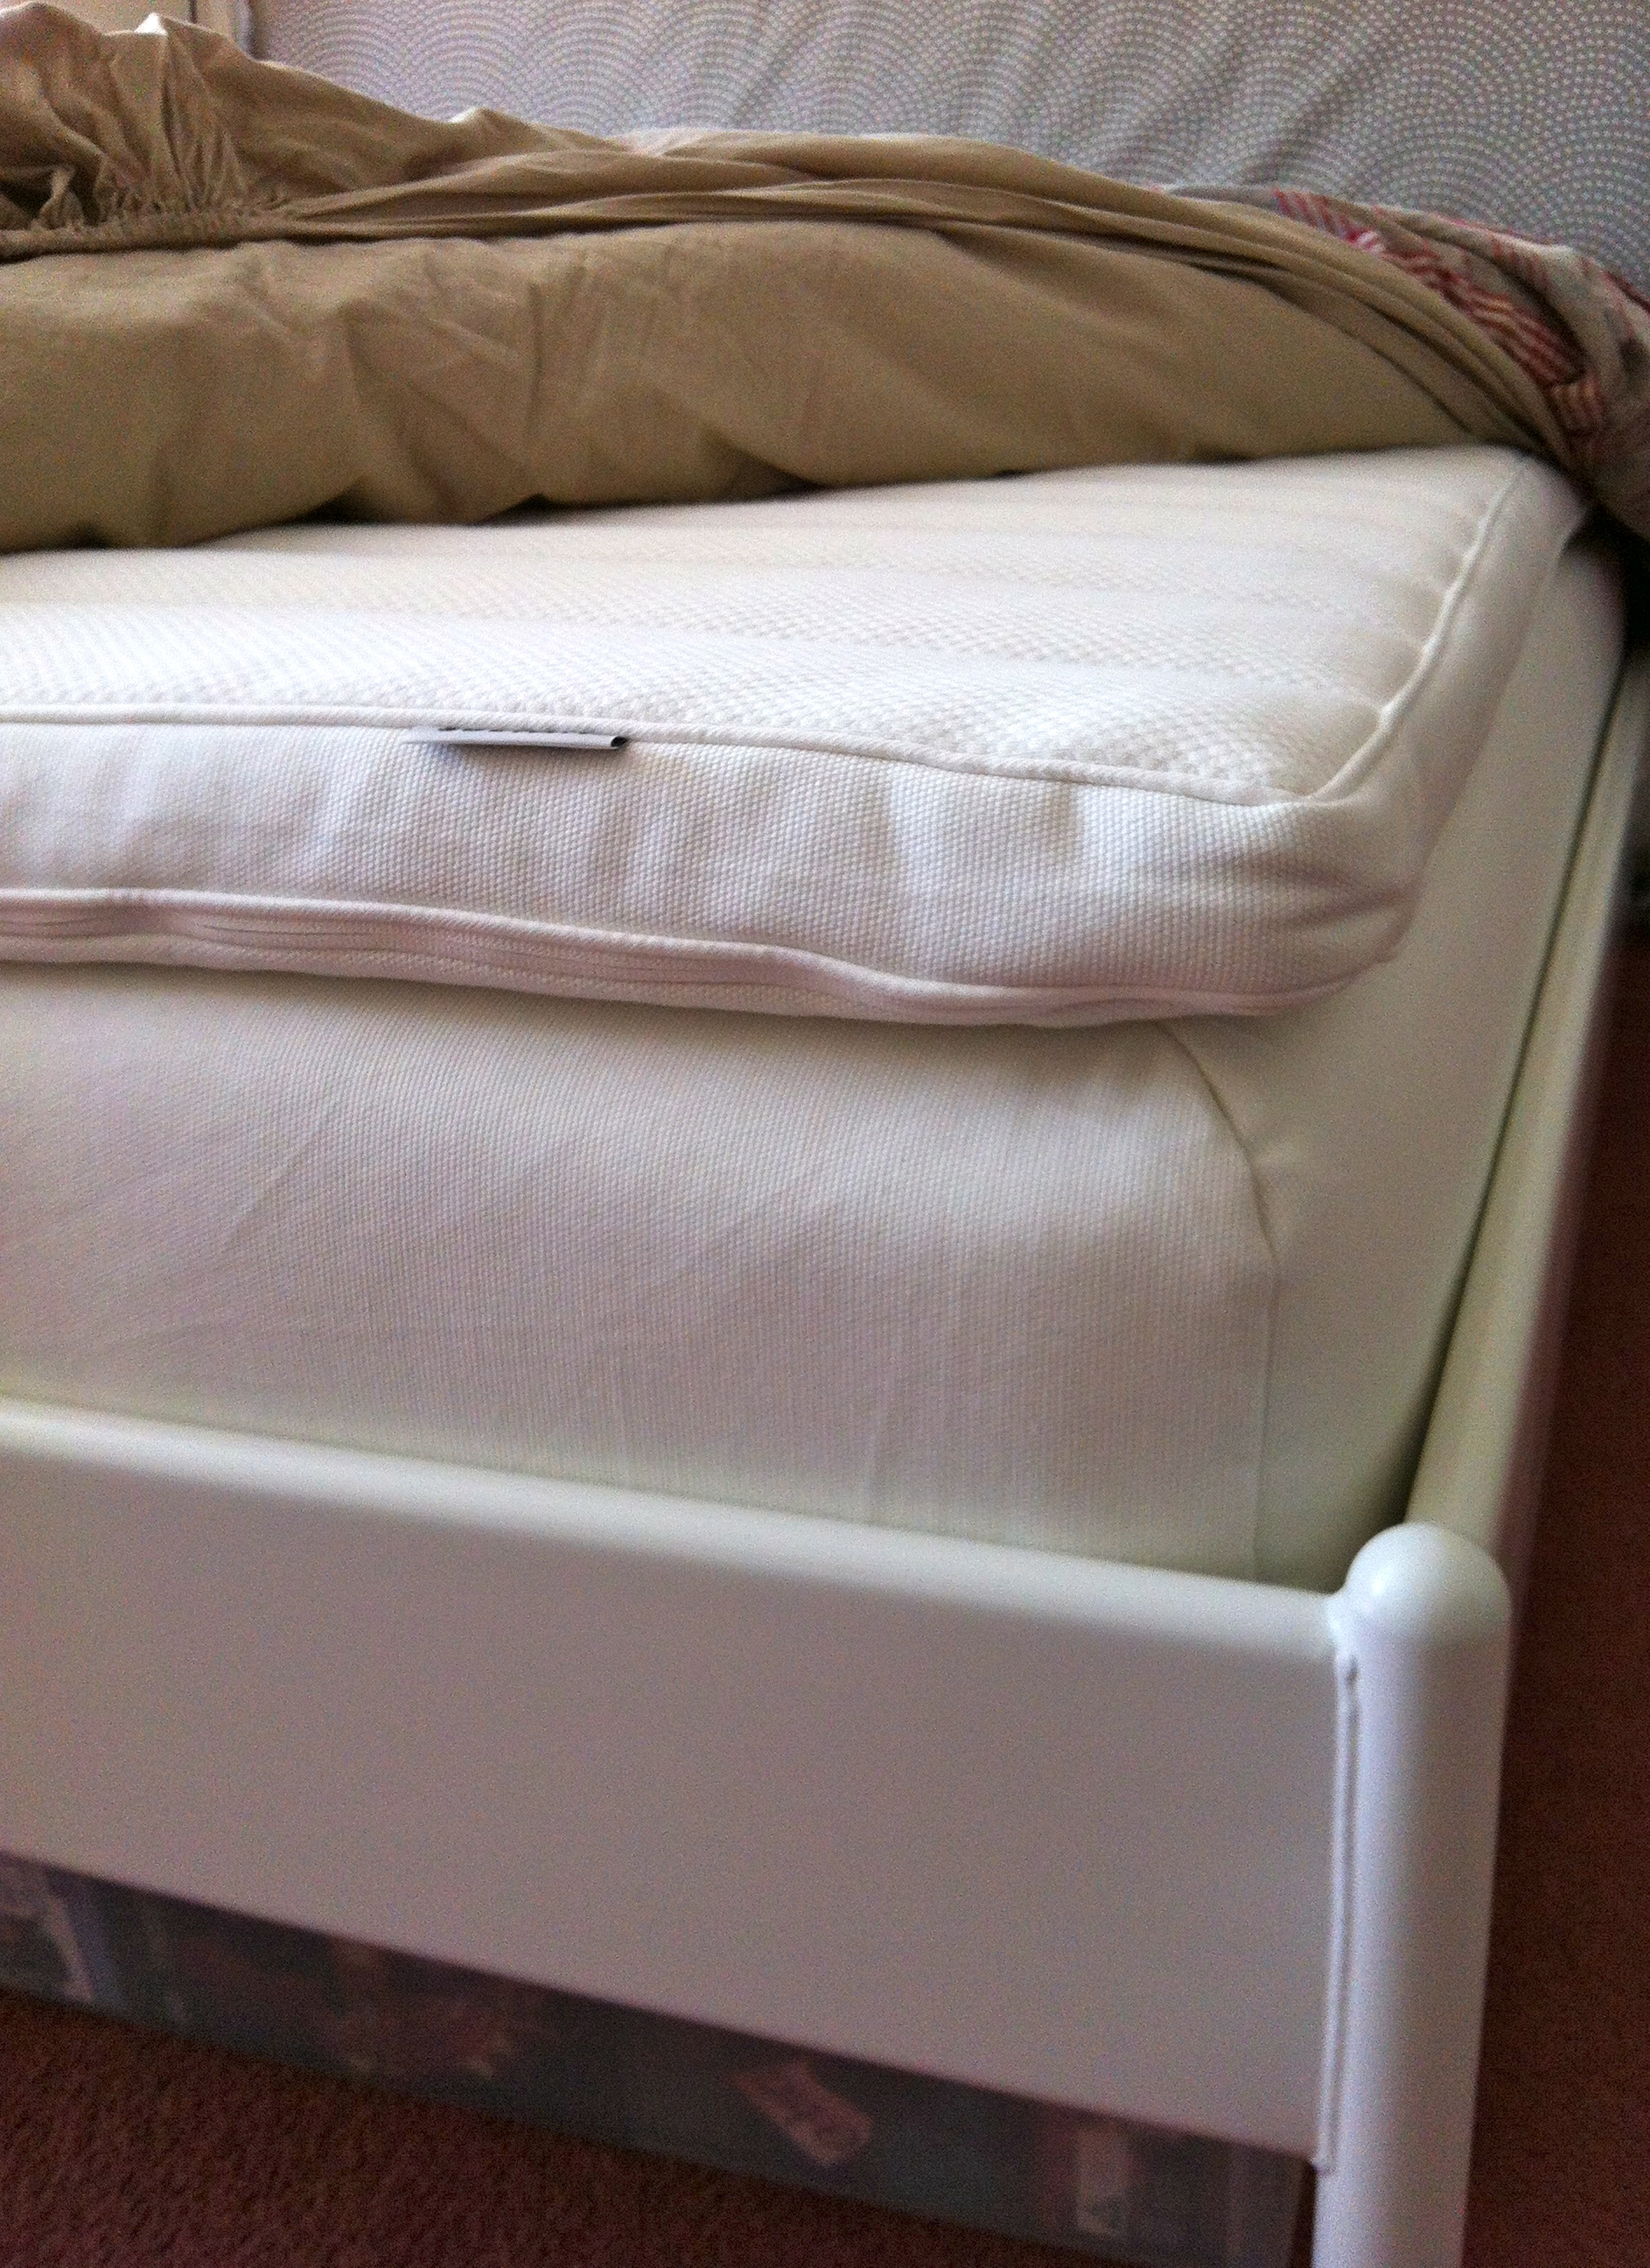 white-cool-mattress-topper-for-beautiful-bedroom-decoration-ideas-cooling-mattress-topper-reviews-cool-mattress-topper-memory-foam-4-inch-mattress-topper-electric-cooling-blanket-cooling-mattress-topp